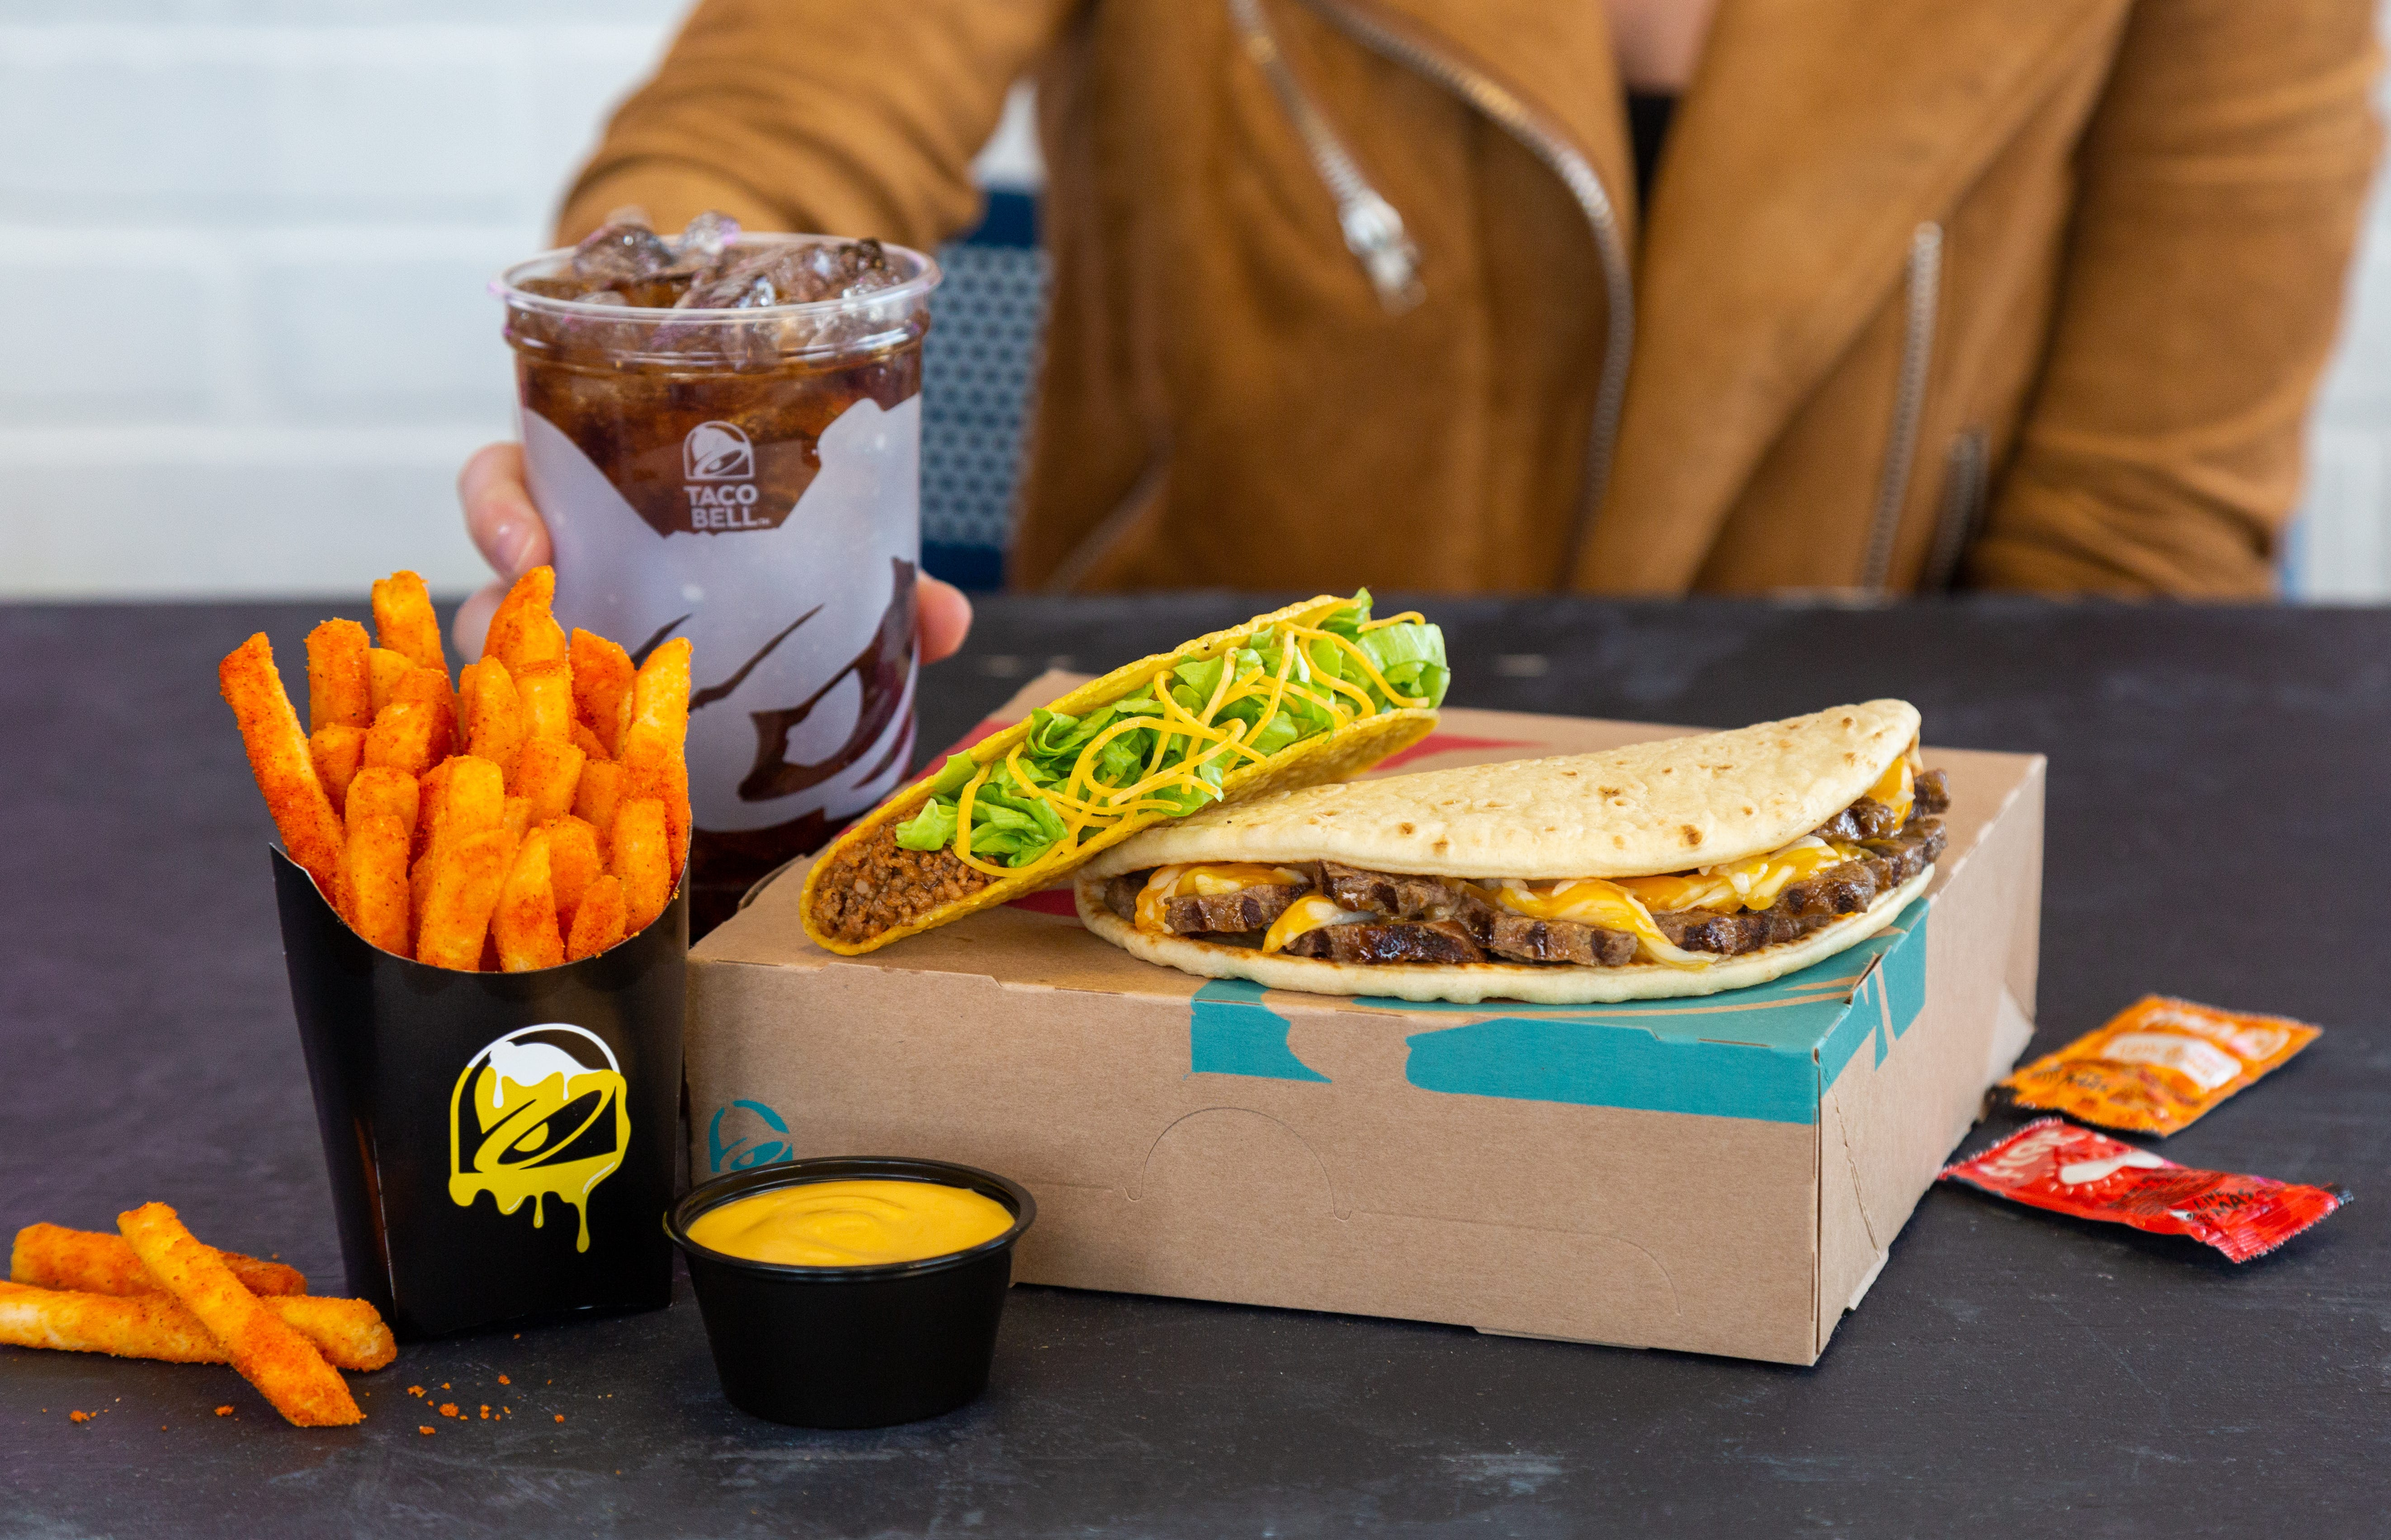 photograph about Taco Bell Printable Menu named Taco Bell screening 2 menu merchandise like a Double Tacky